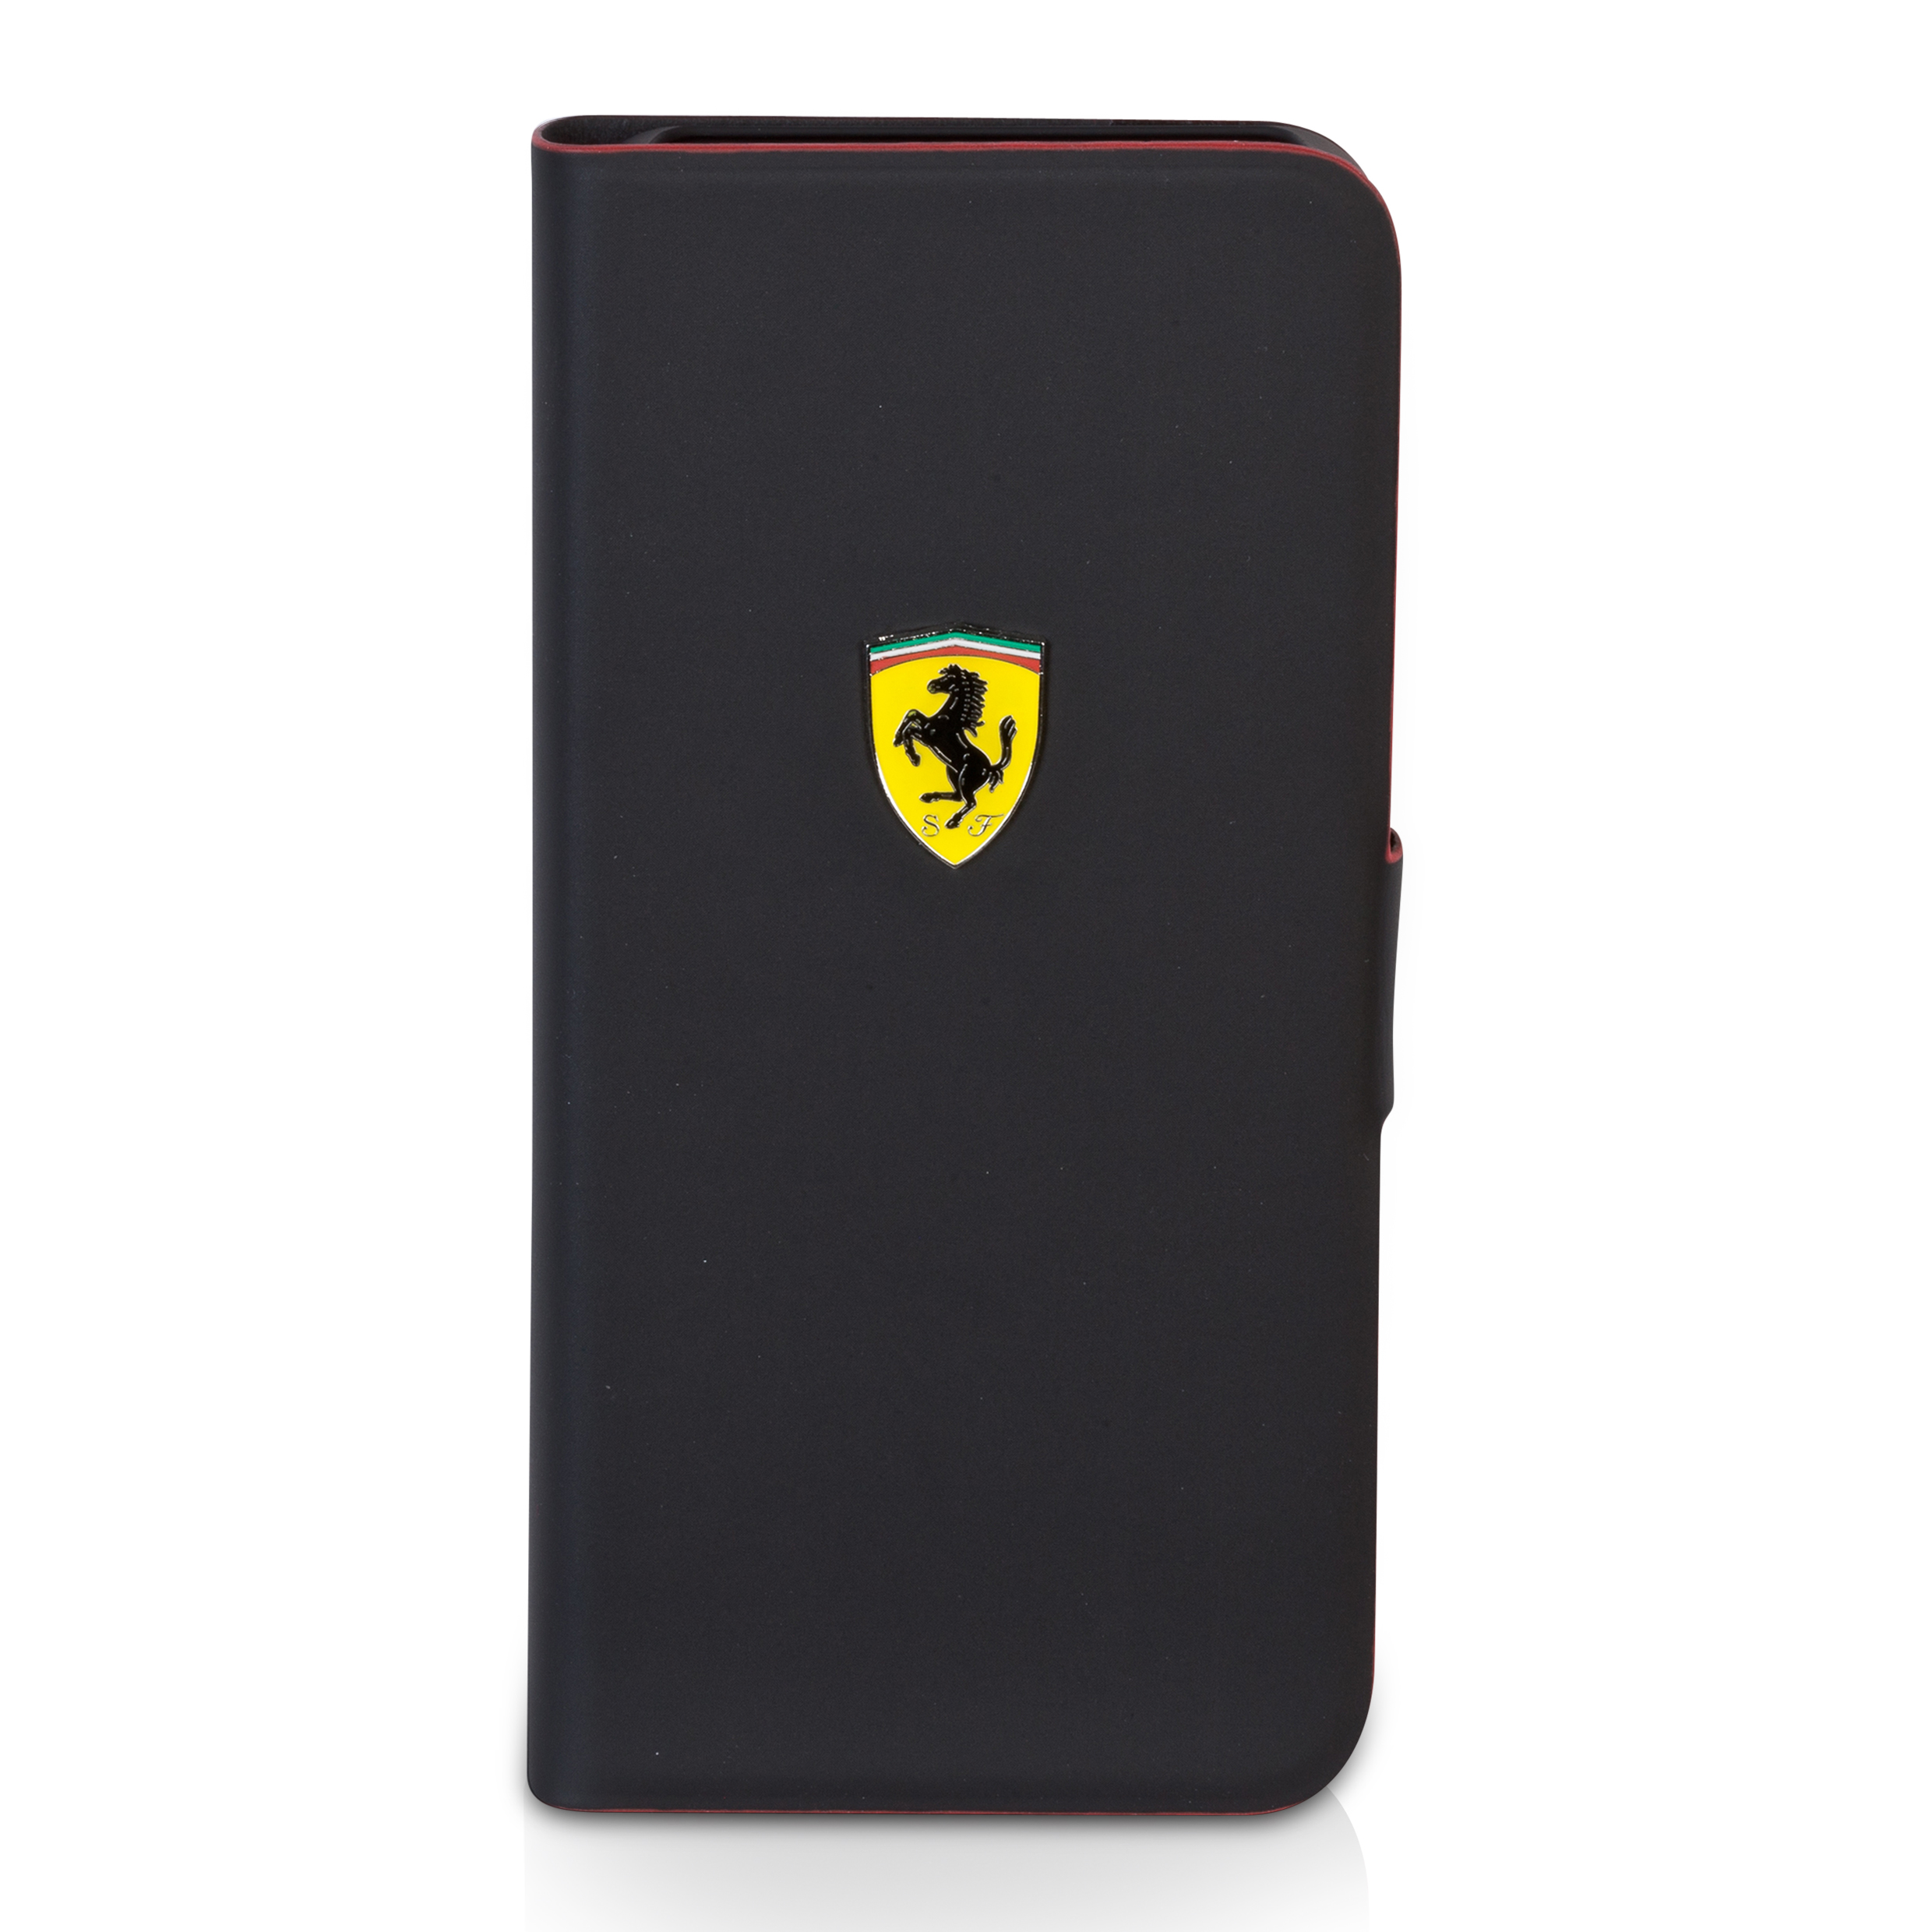 Scuderia Ferrari iPhone 5 Rubber Hardcase With Flap - Black Black